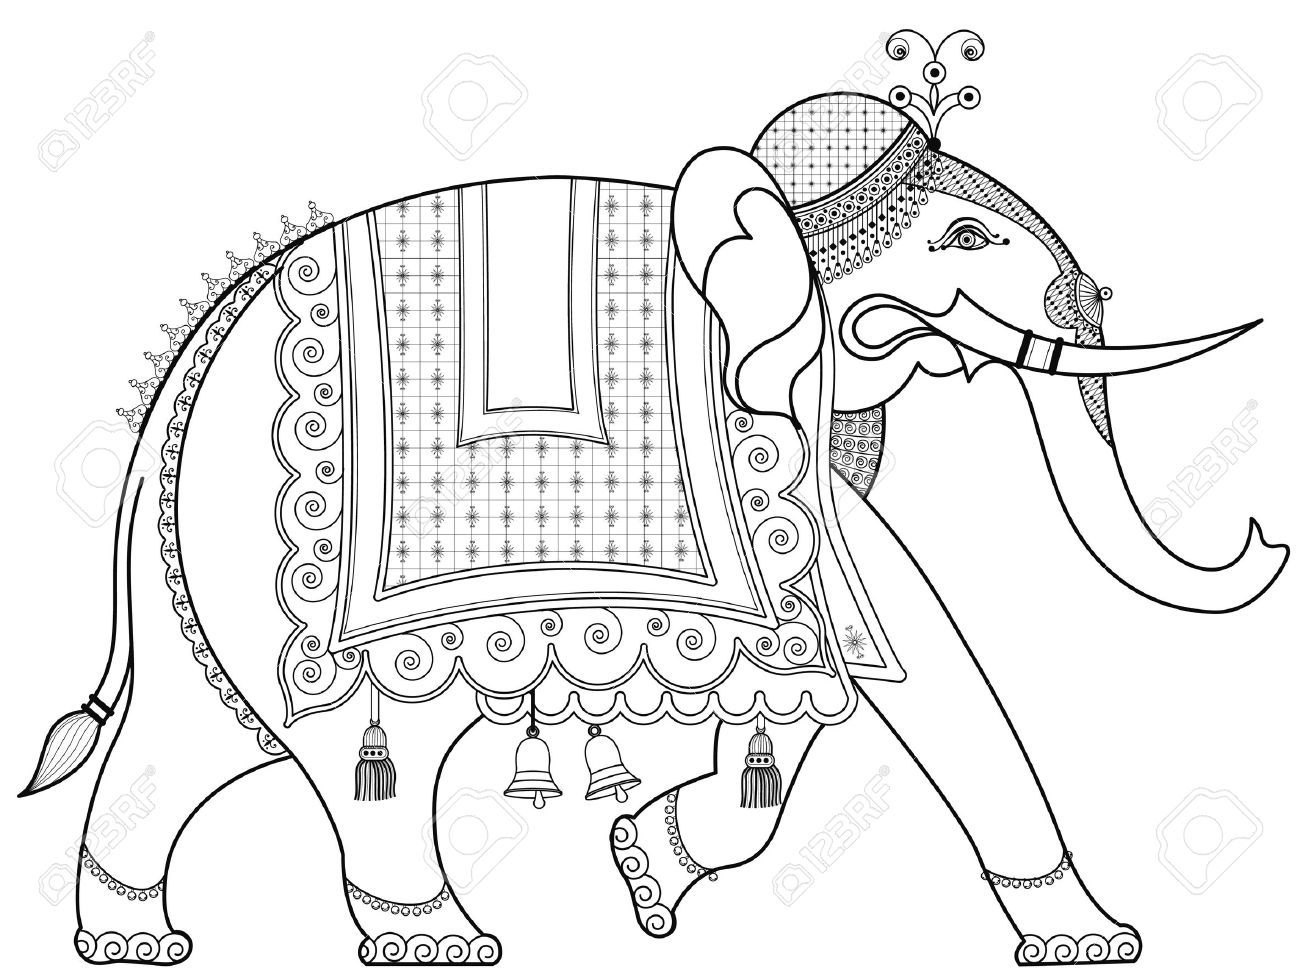 decorated indian elephant - Google Search | India | Pinterest ...